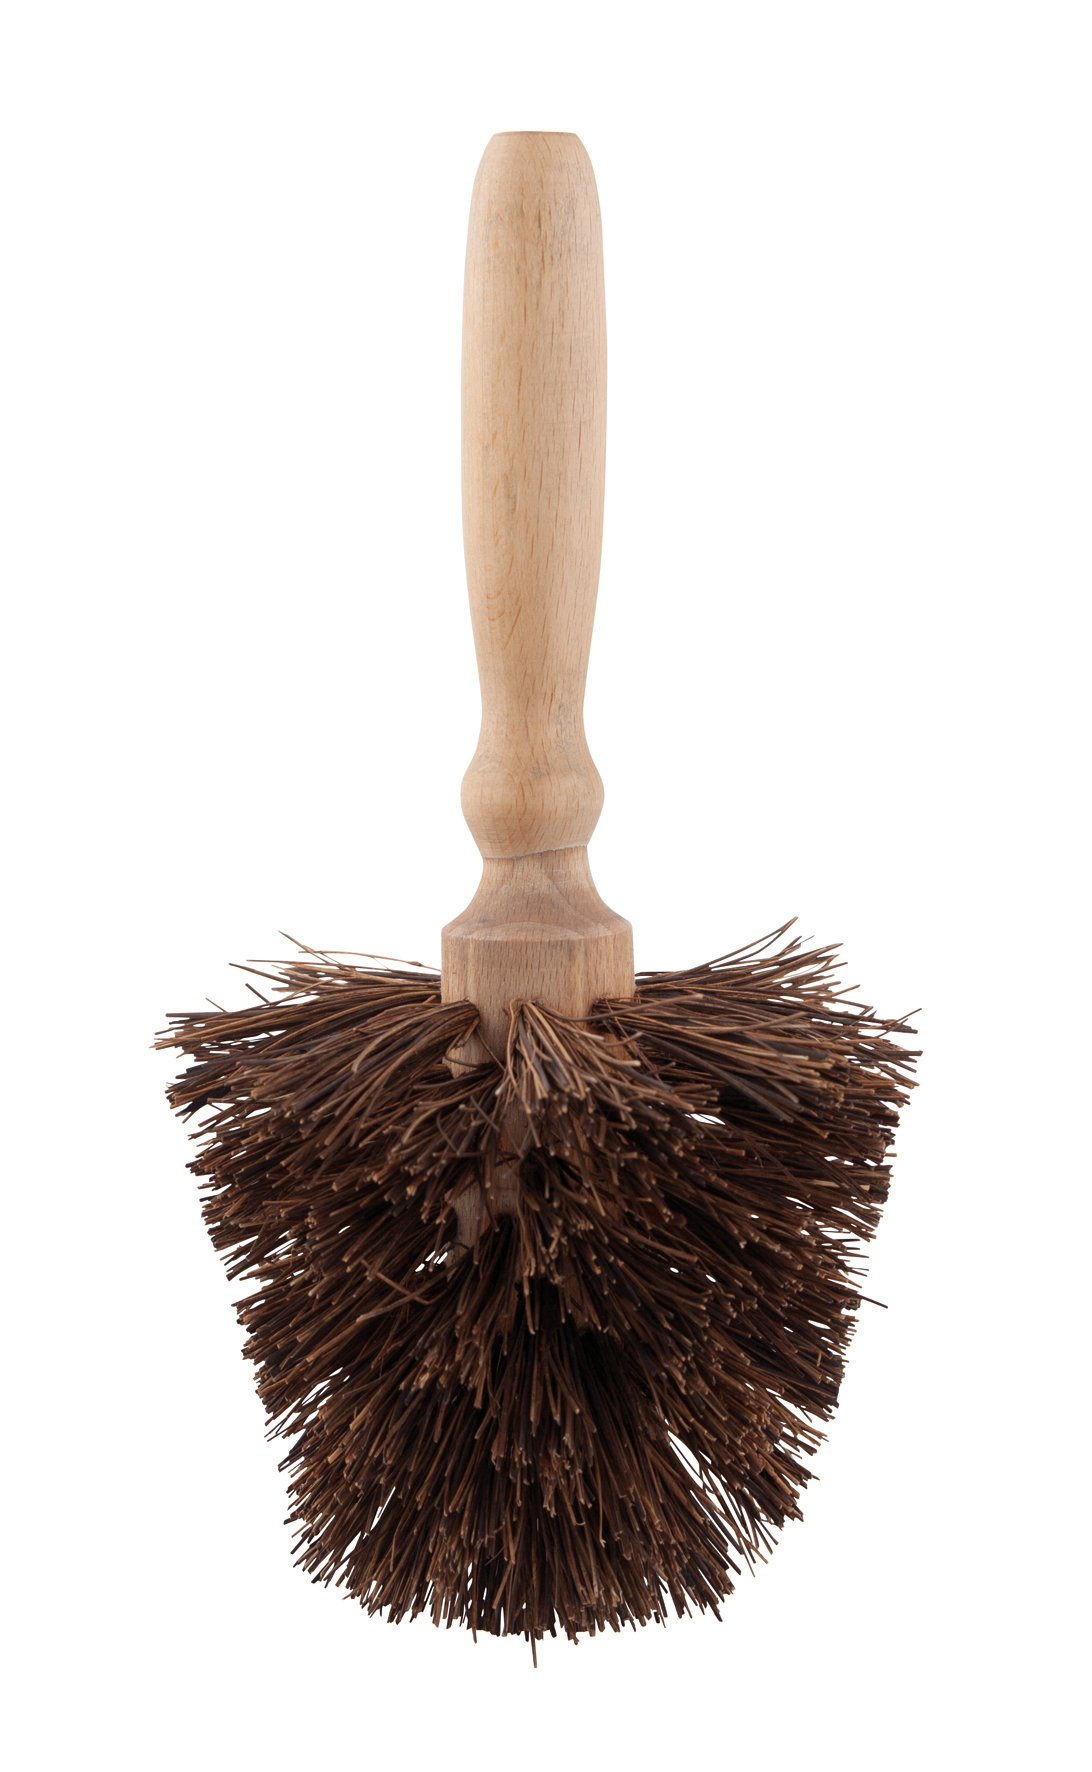 Redecker Palmyra Fiber Flowerpot Brush with Oiled Beechwood Handle, 9-7/8-Inches